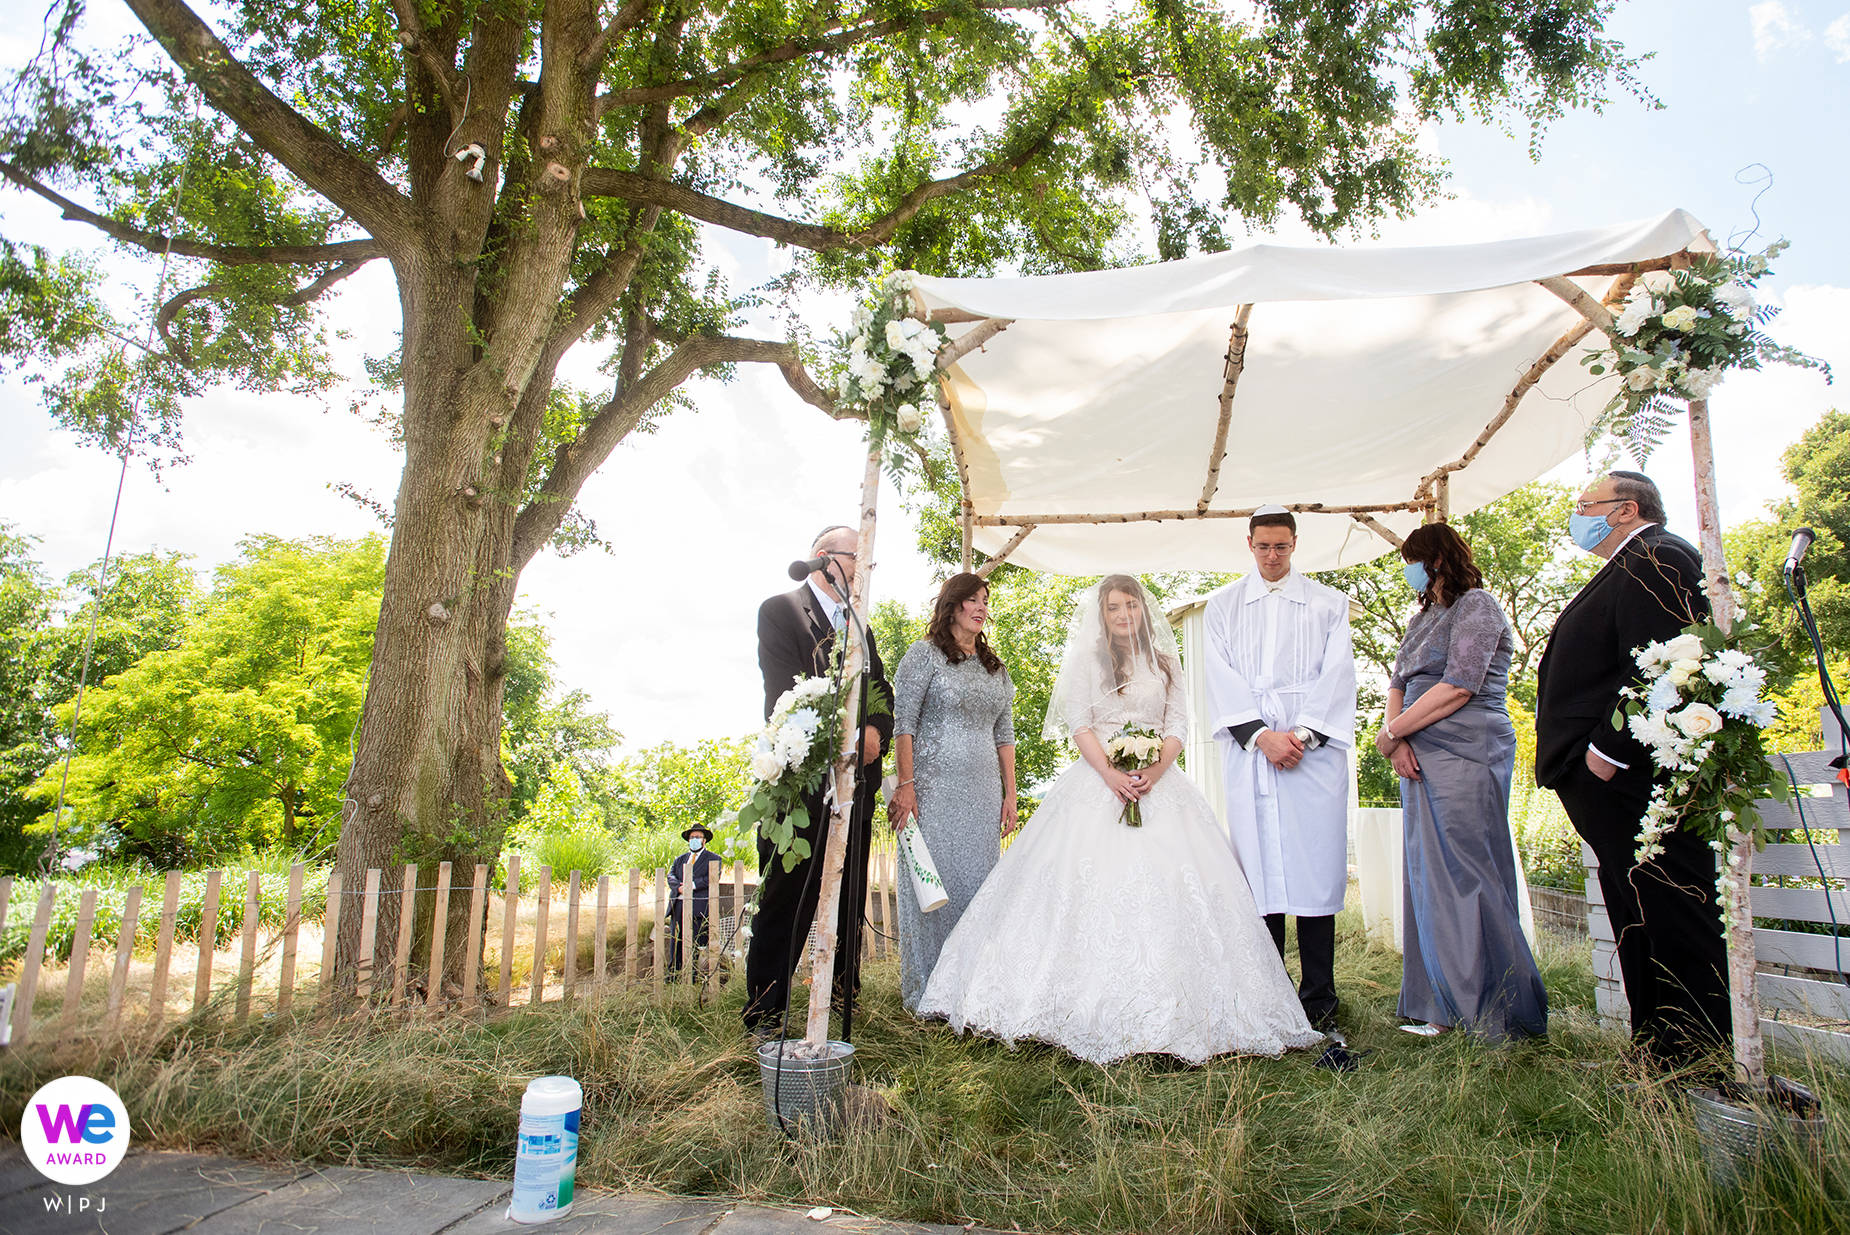 Wedding Photographer for Pittsburgh, PA | the branches of the tree gave the impression that it was embracing the chuppah